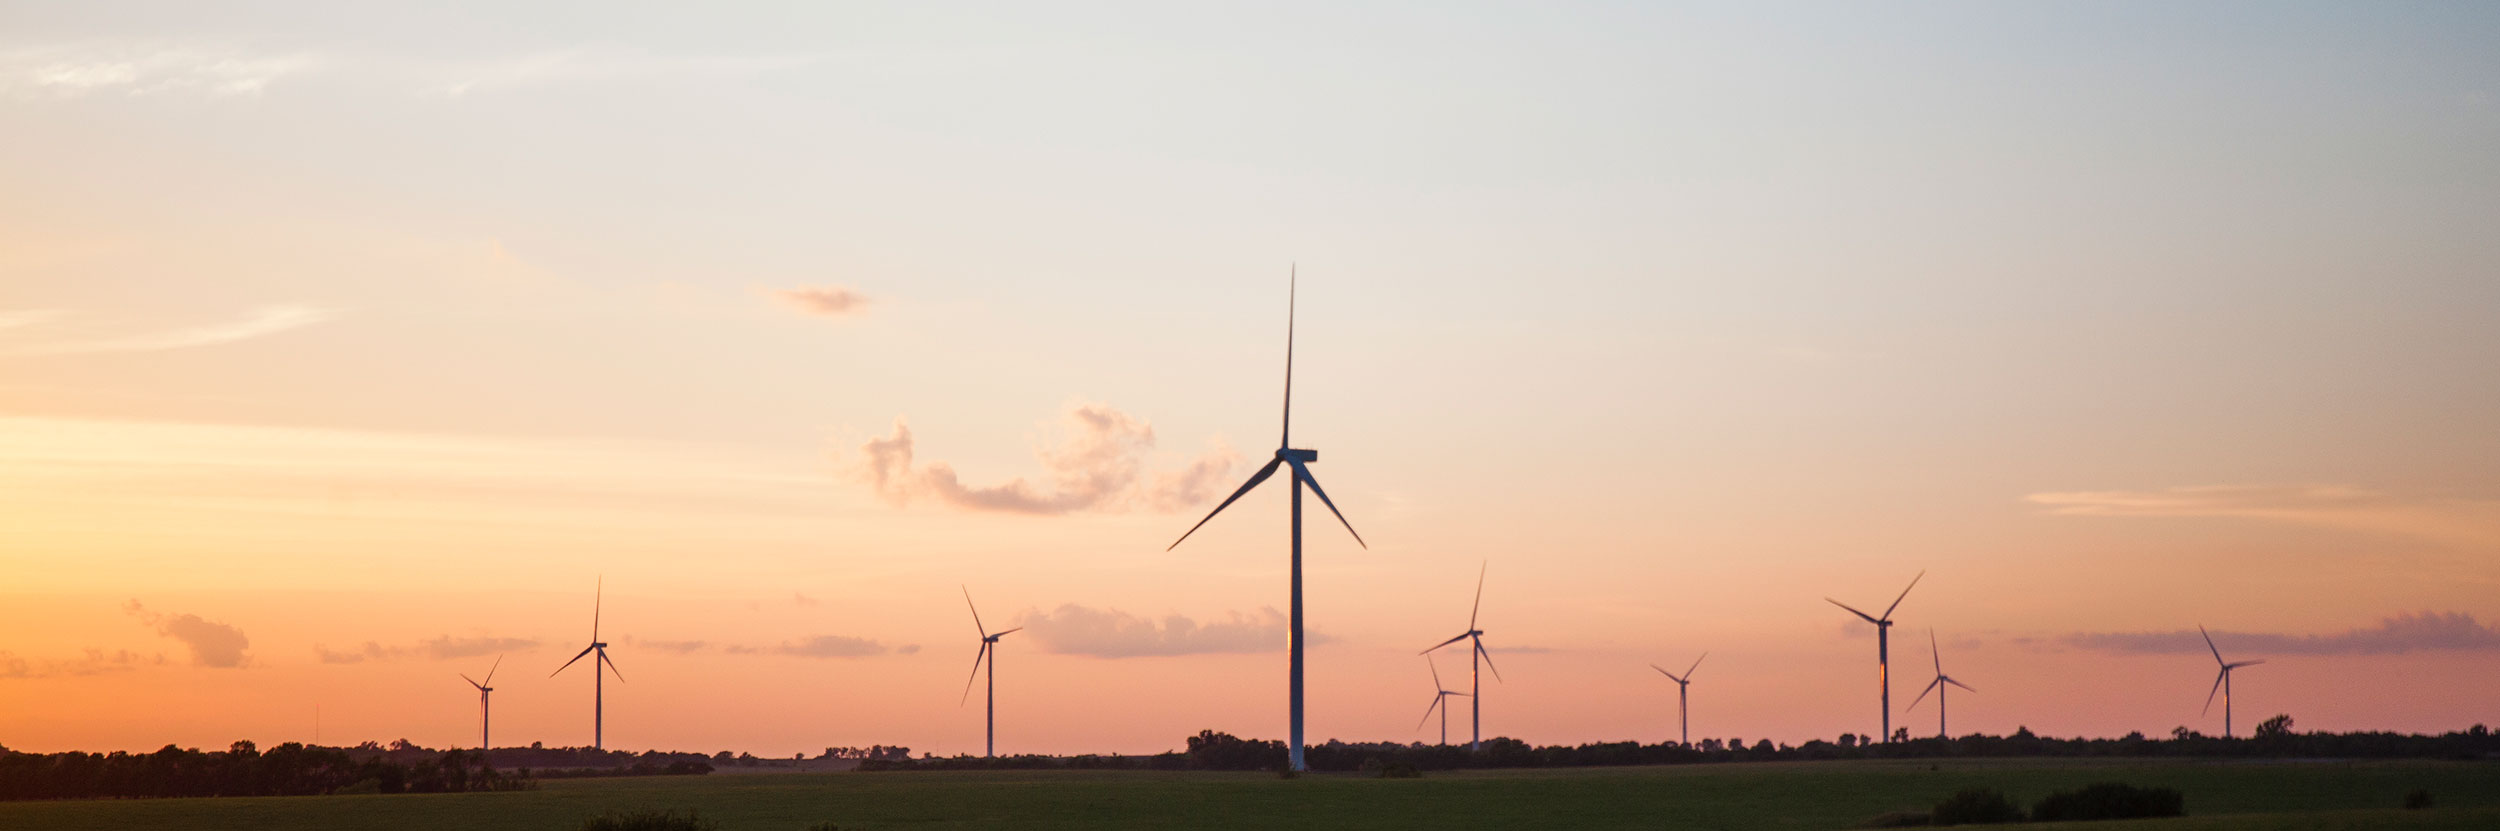 Wind Turbine Sunset Rows